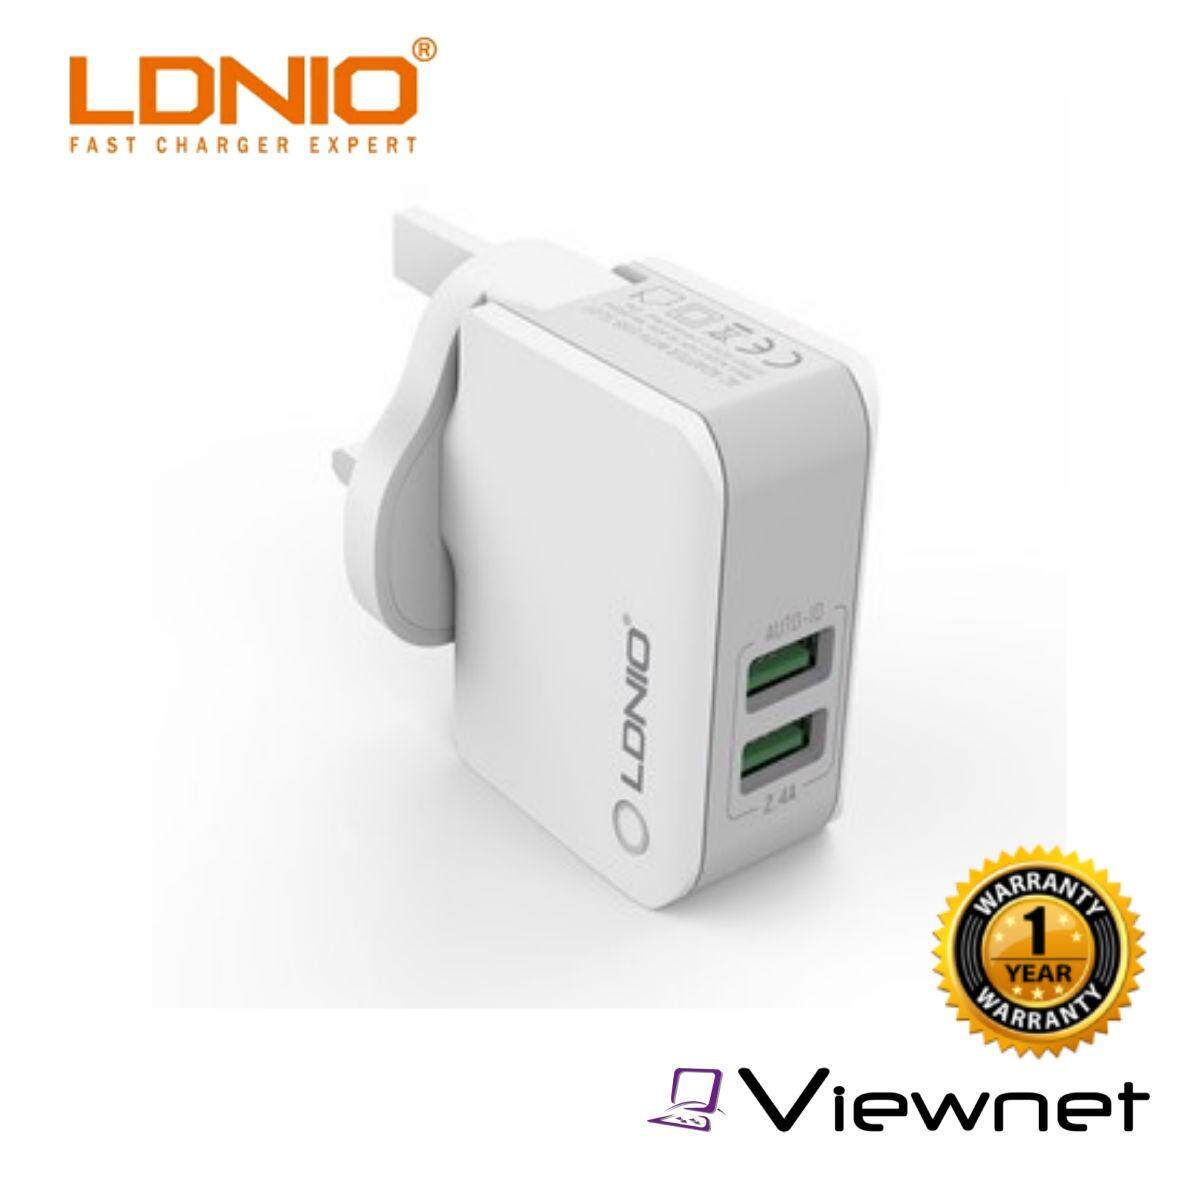 LDNIO 2-USB 2.4A Adapter WIith Micro USB Cable (A2203)